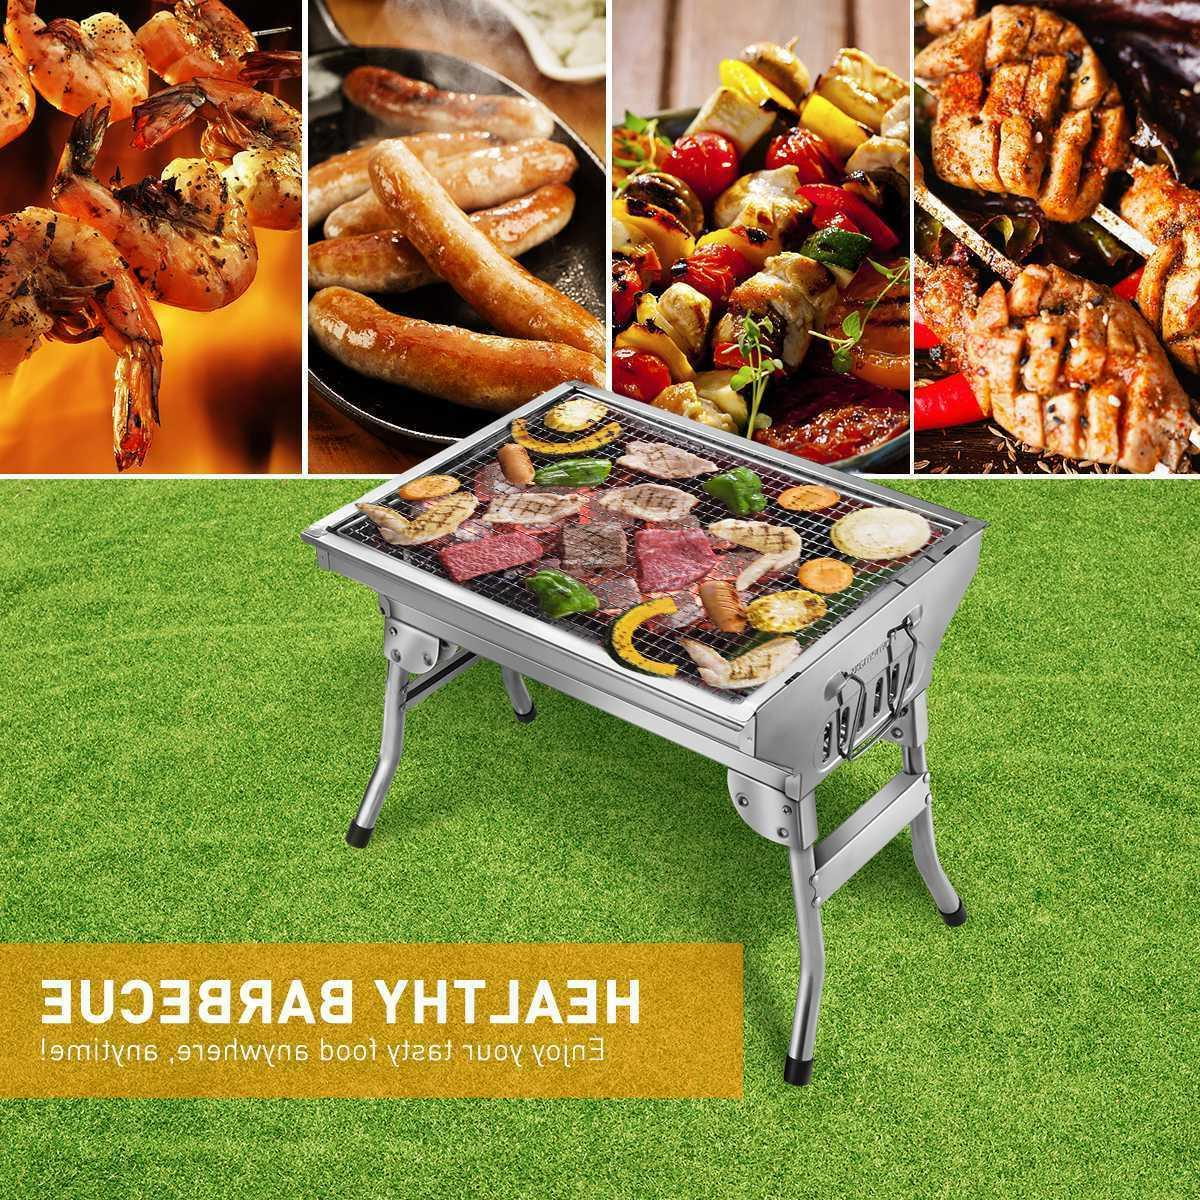 Portable Propane Gas Stainless Barbecue Outdoor Camp Backyard